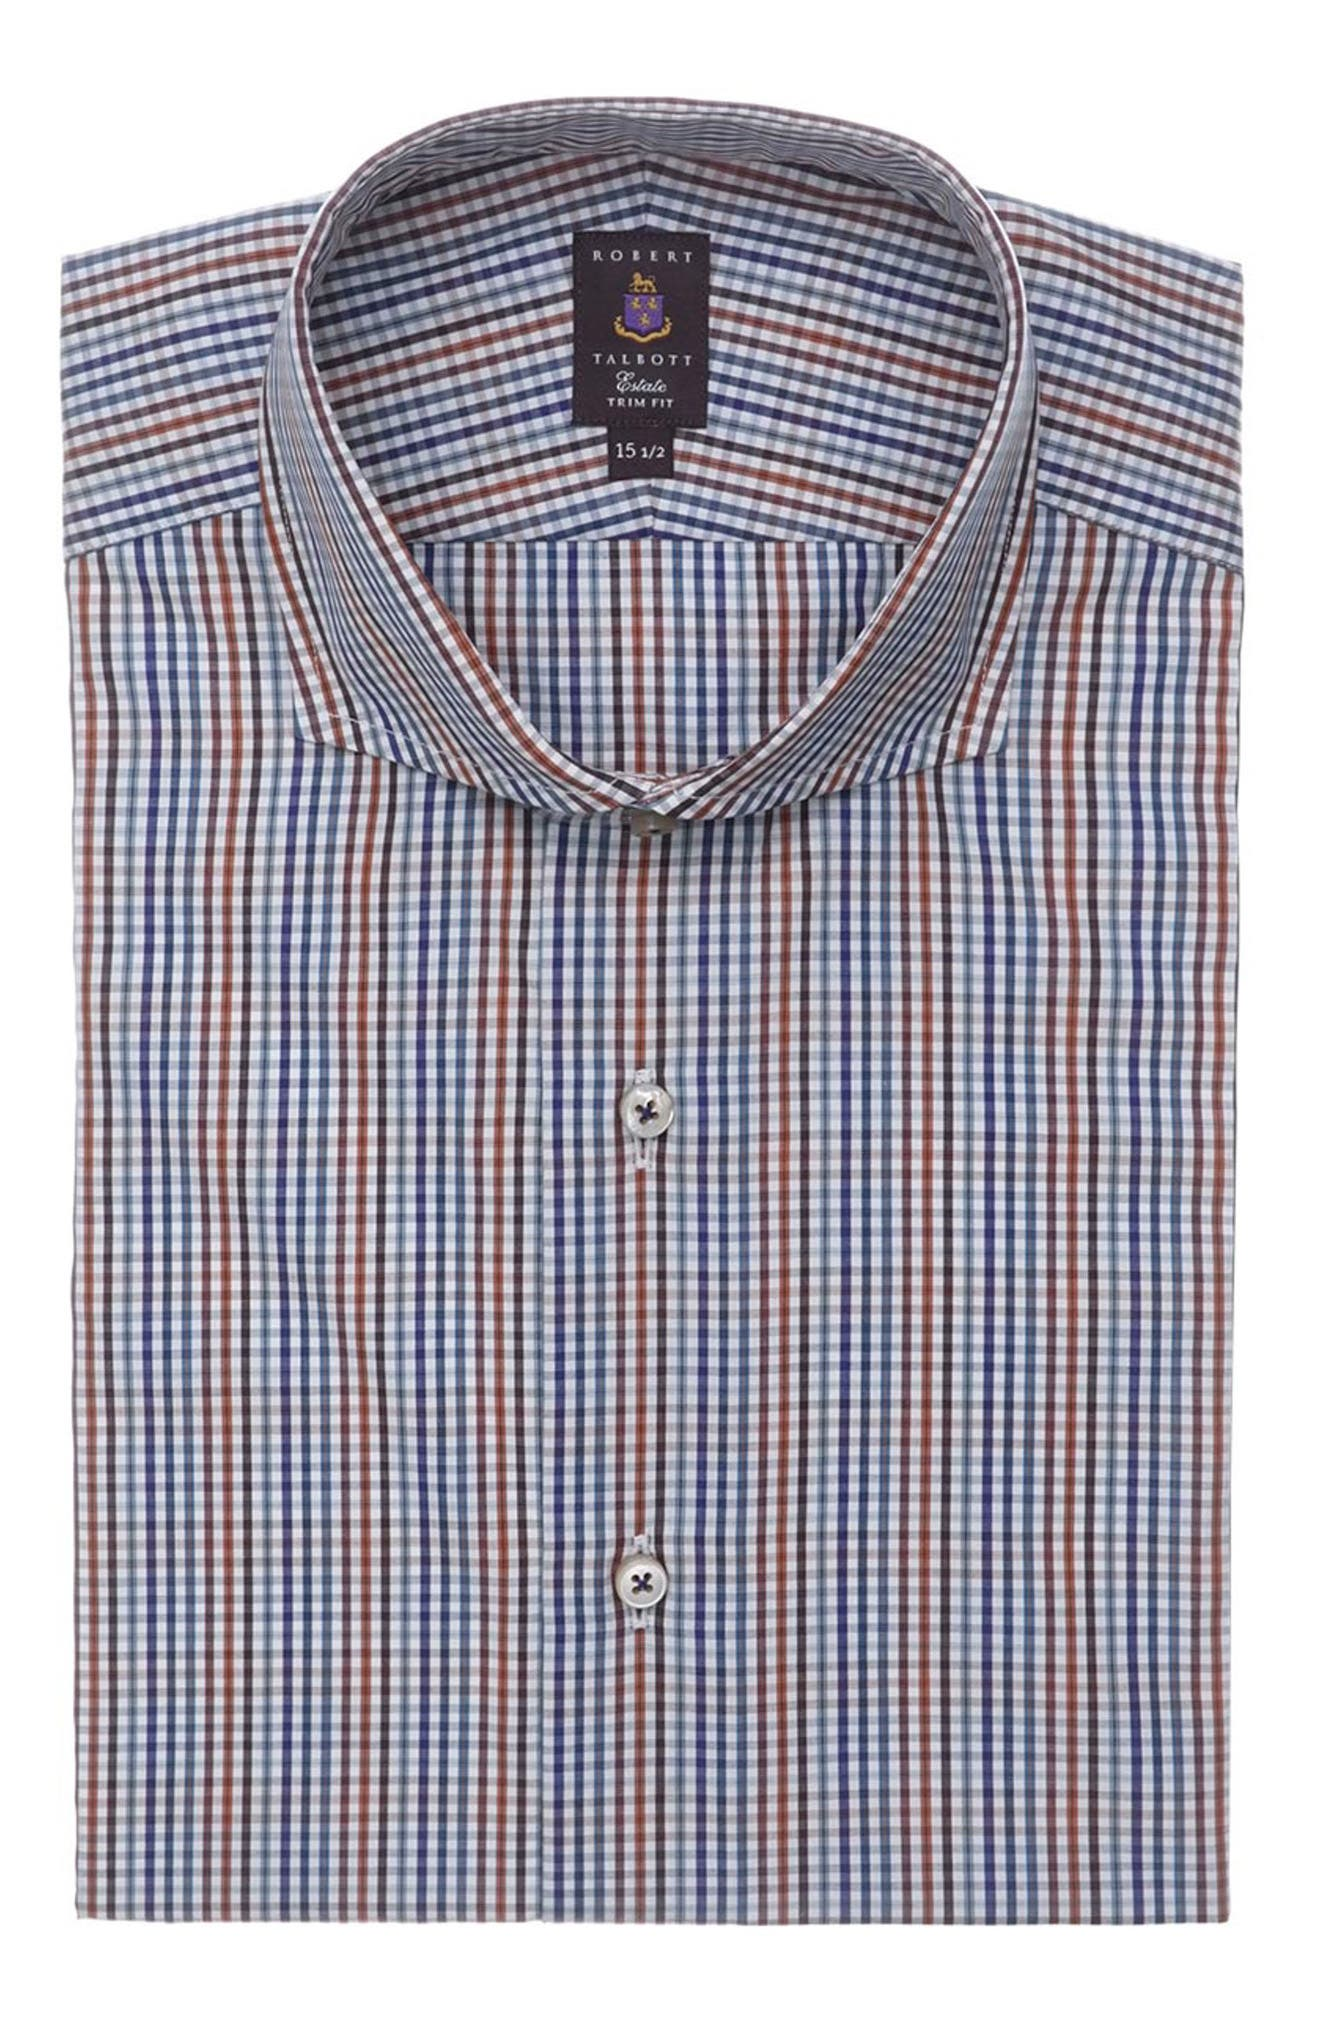 Tailored Fit Check Dress Shirt,                             Main thumbnail 1, color,                             Blue Multi